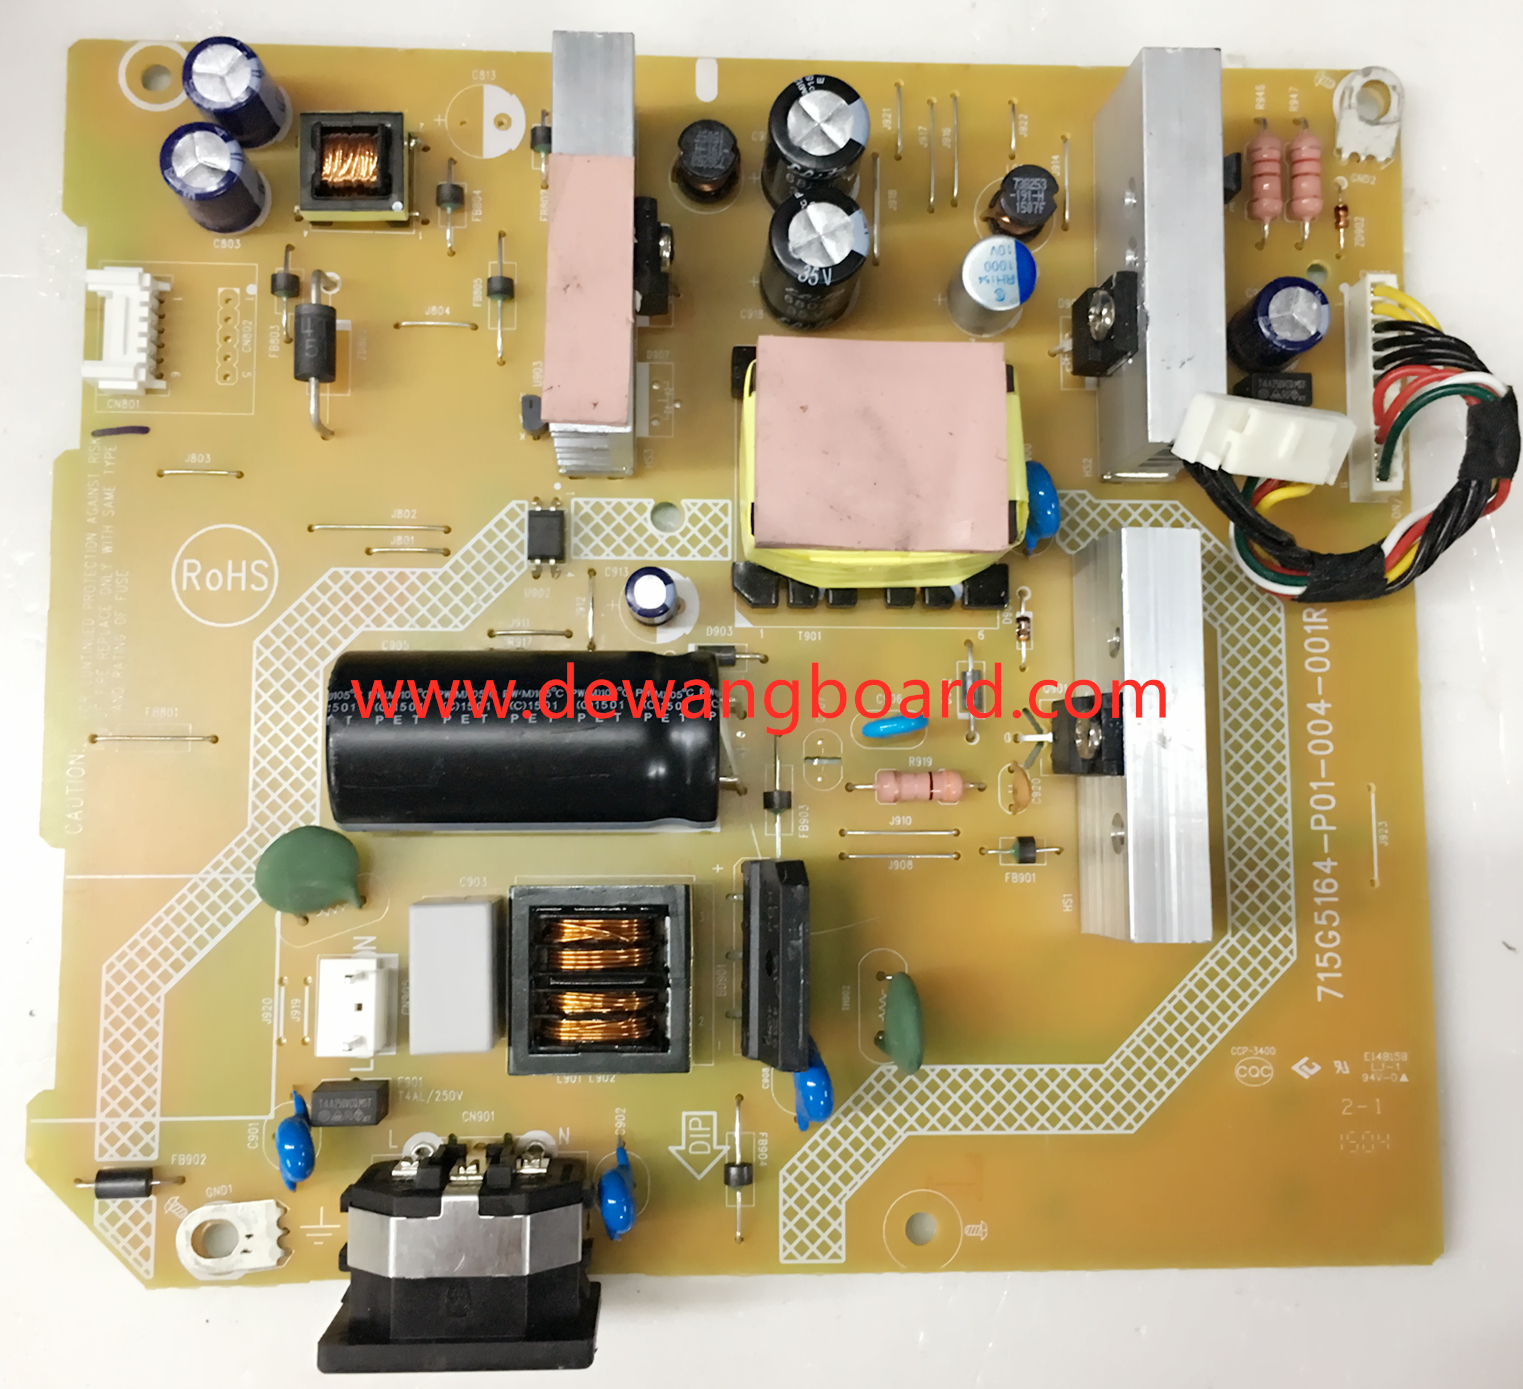 715G5164-P01-004-001R PHILIPS 242G5D supply power board M240HW01